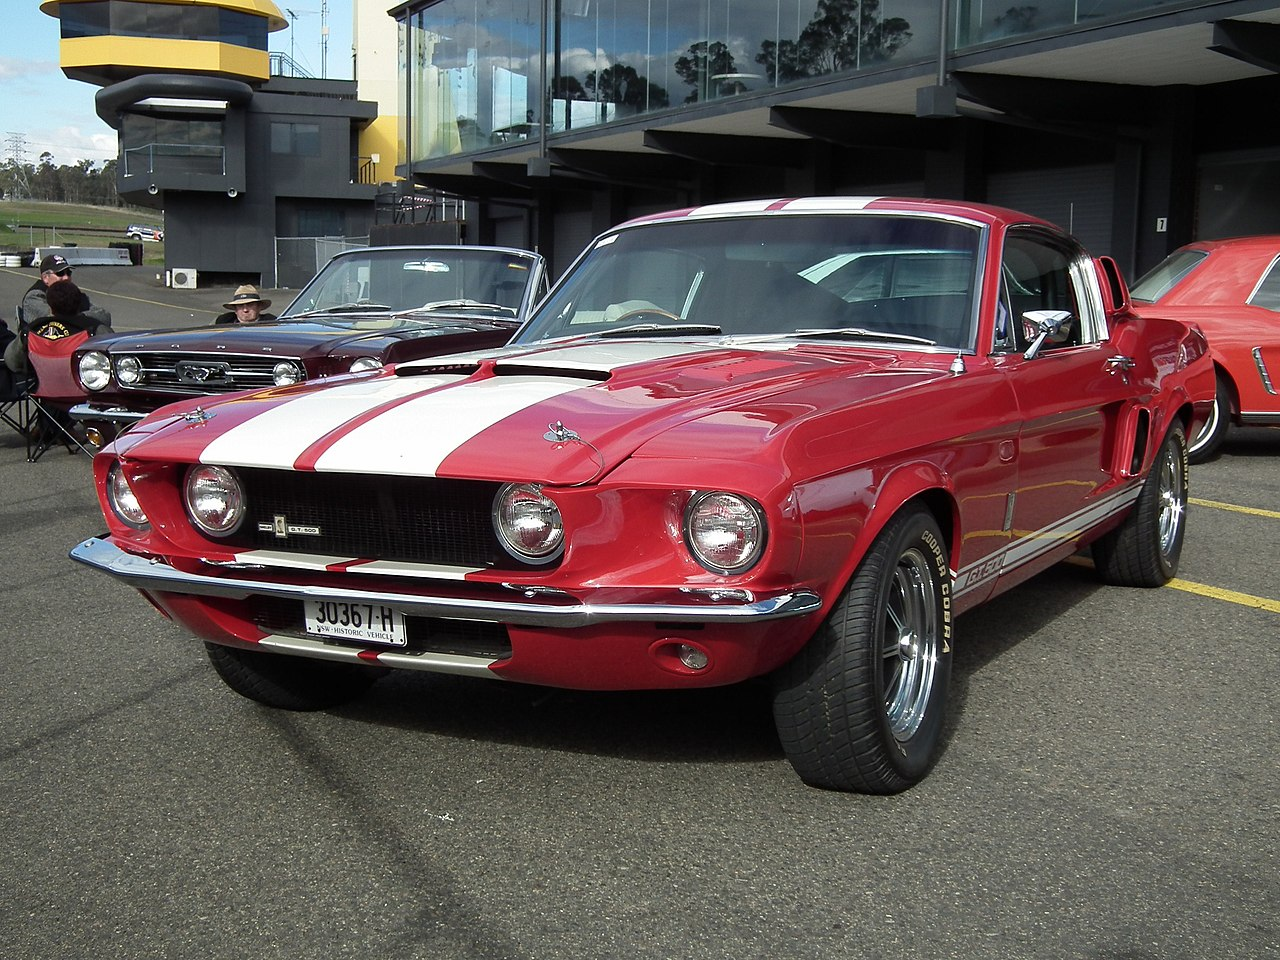 File:1967 Ford Mustang Shelby GT500 coupe (7708119910).jpg ...